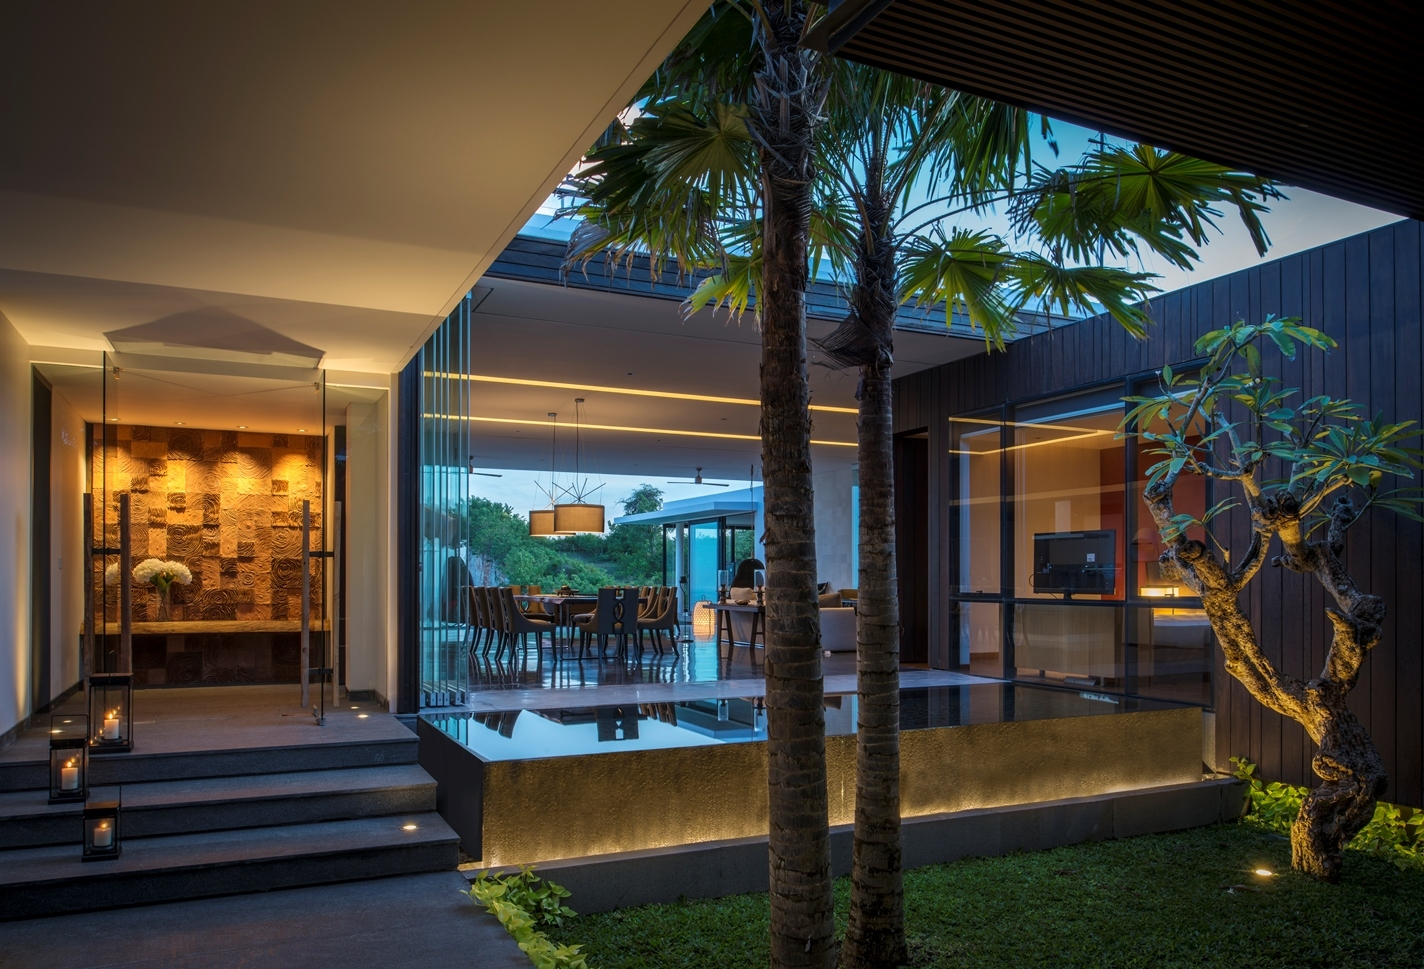 Modern Resort Villa With Balinese Theme | iDesignArch | Interior ...